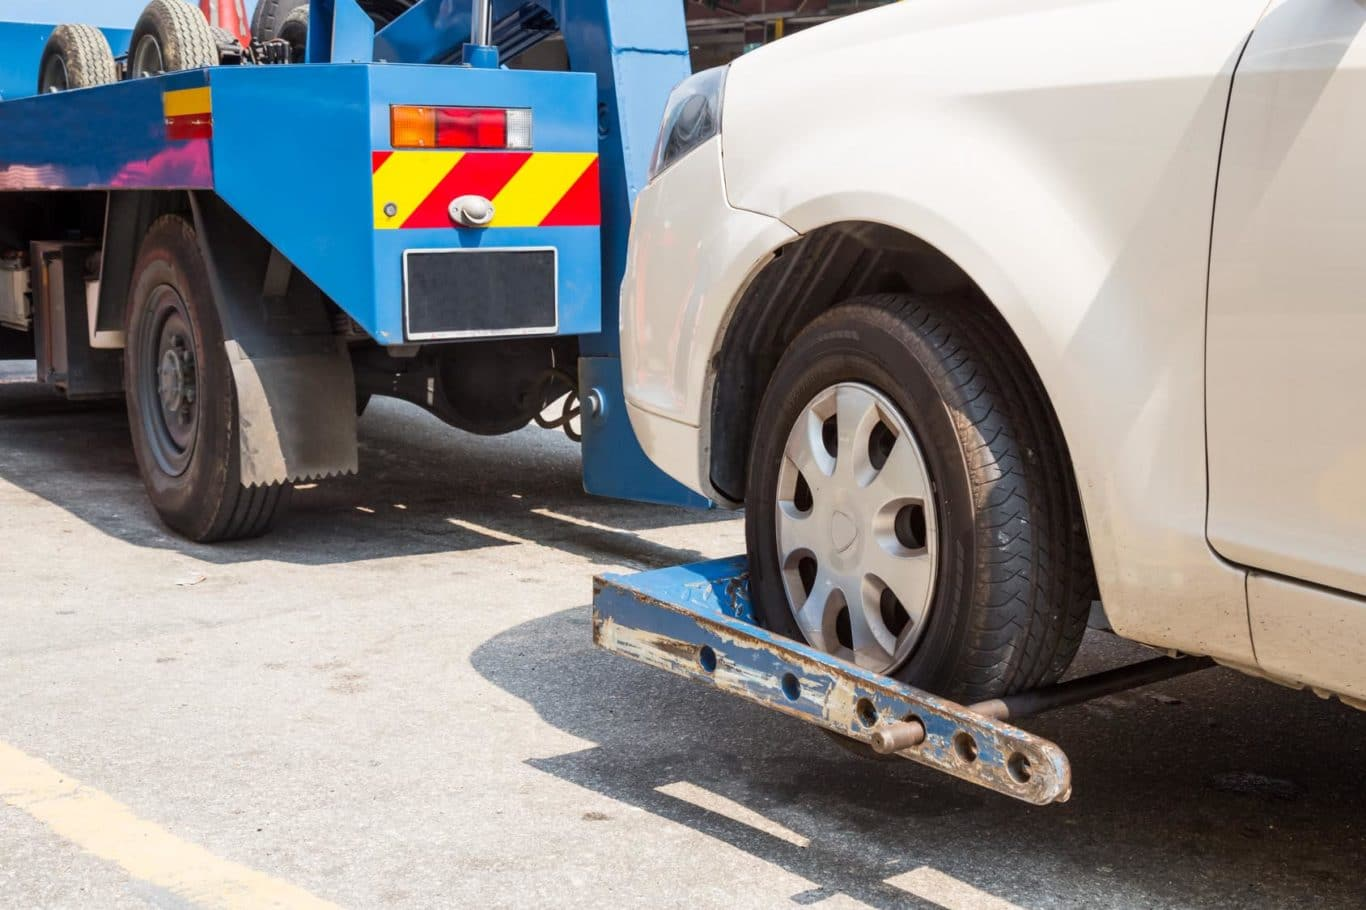 Leixlip expert Towing And Recovery Dublin services